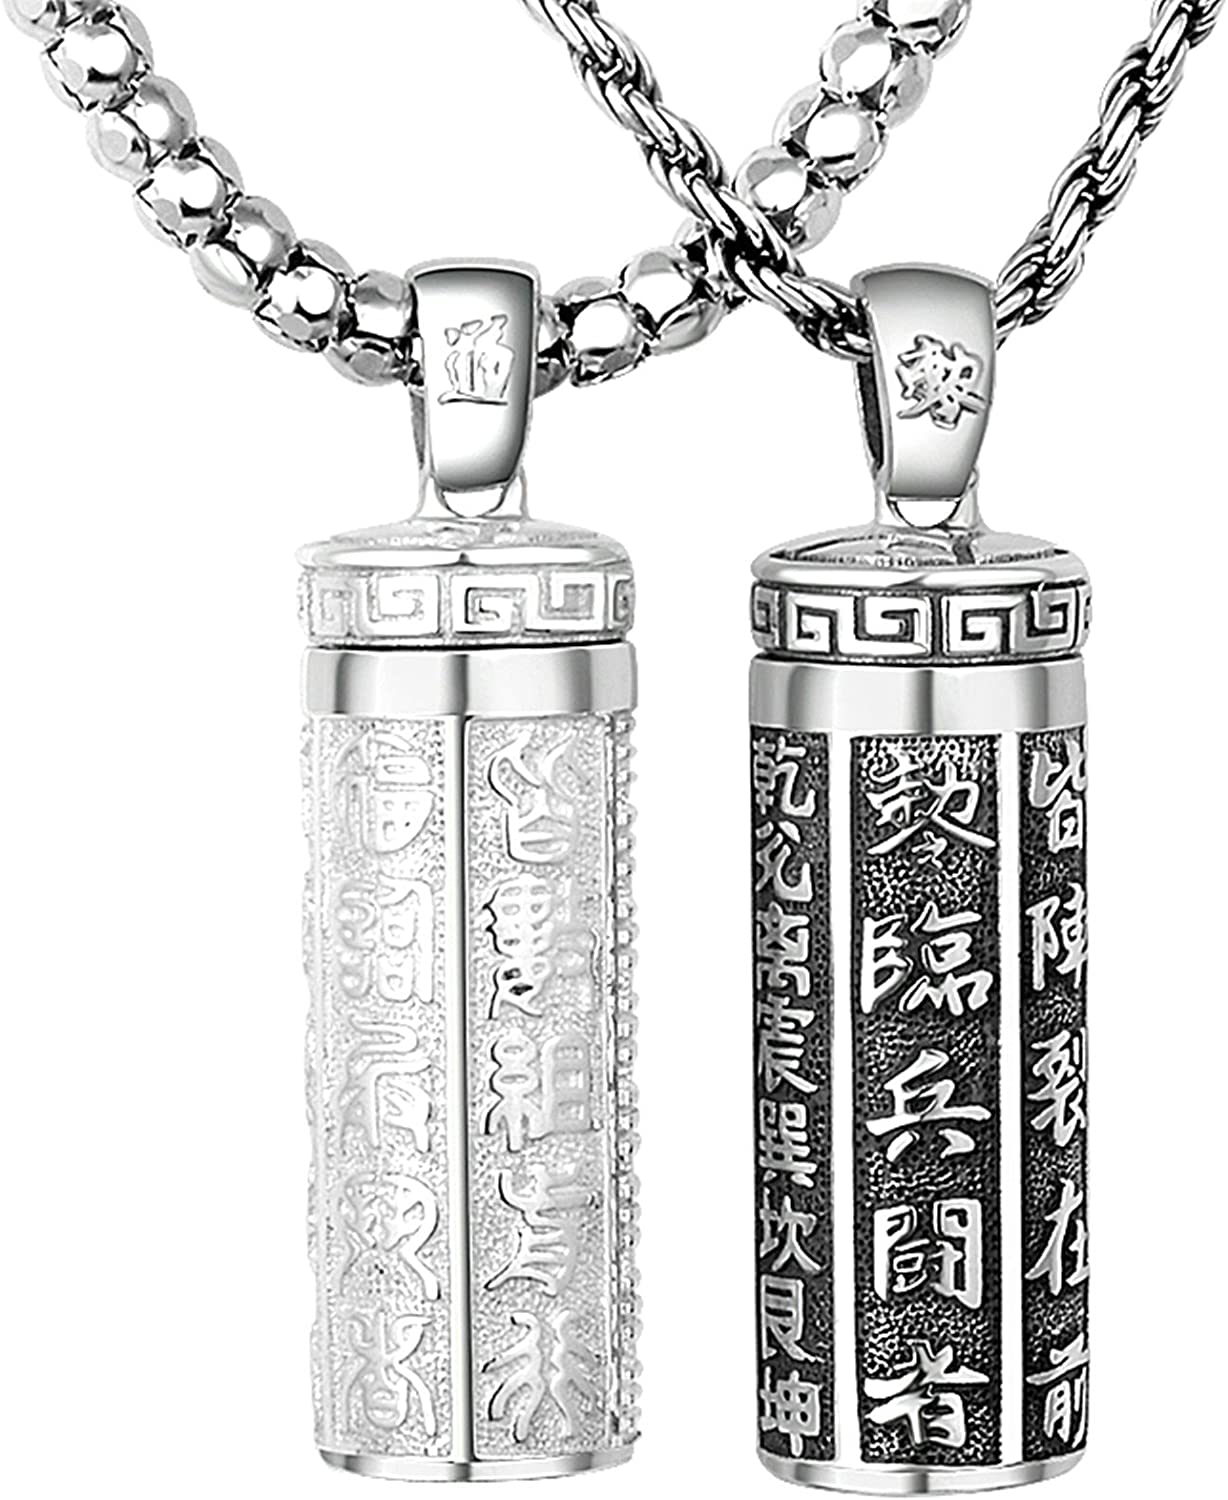 Aooaz Pendant Necklaces for Men Women Silver Material Necklace Buddha Beads Chain Chain Necklace